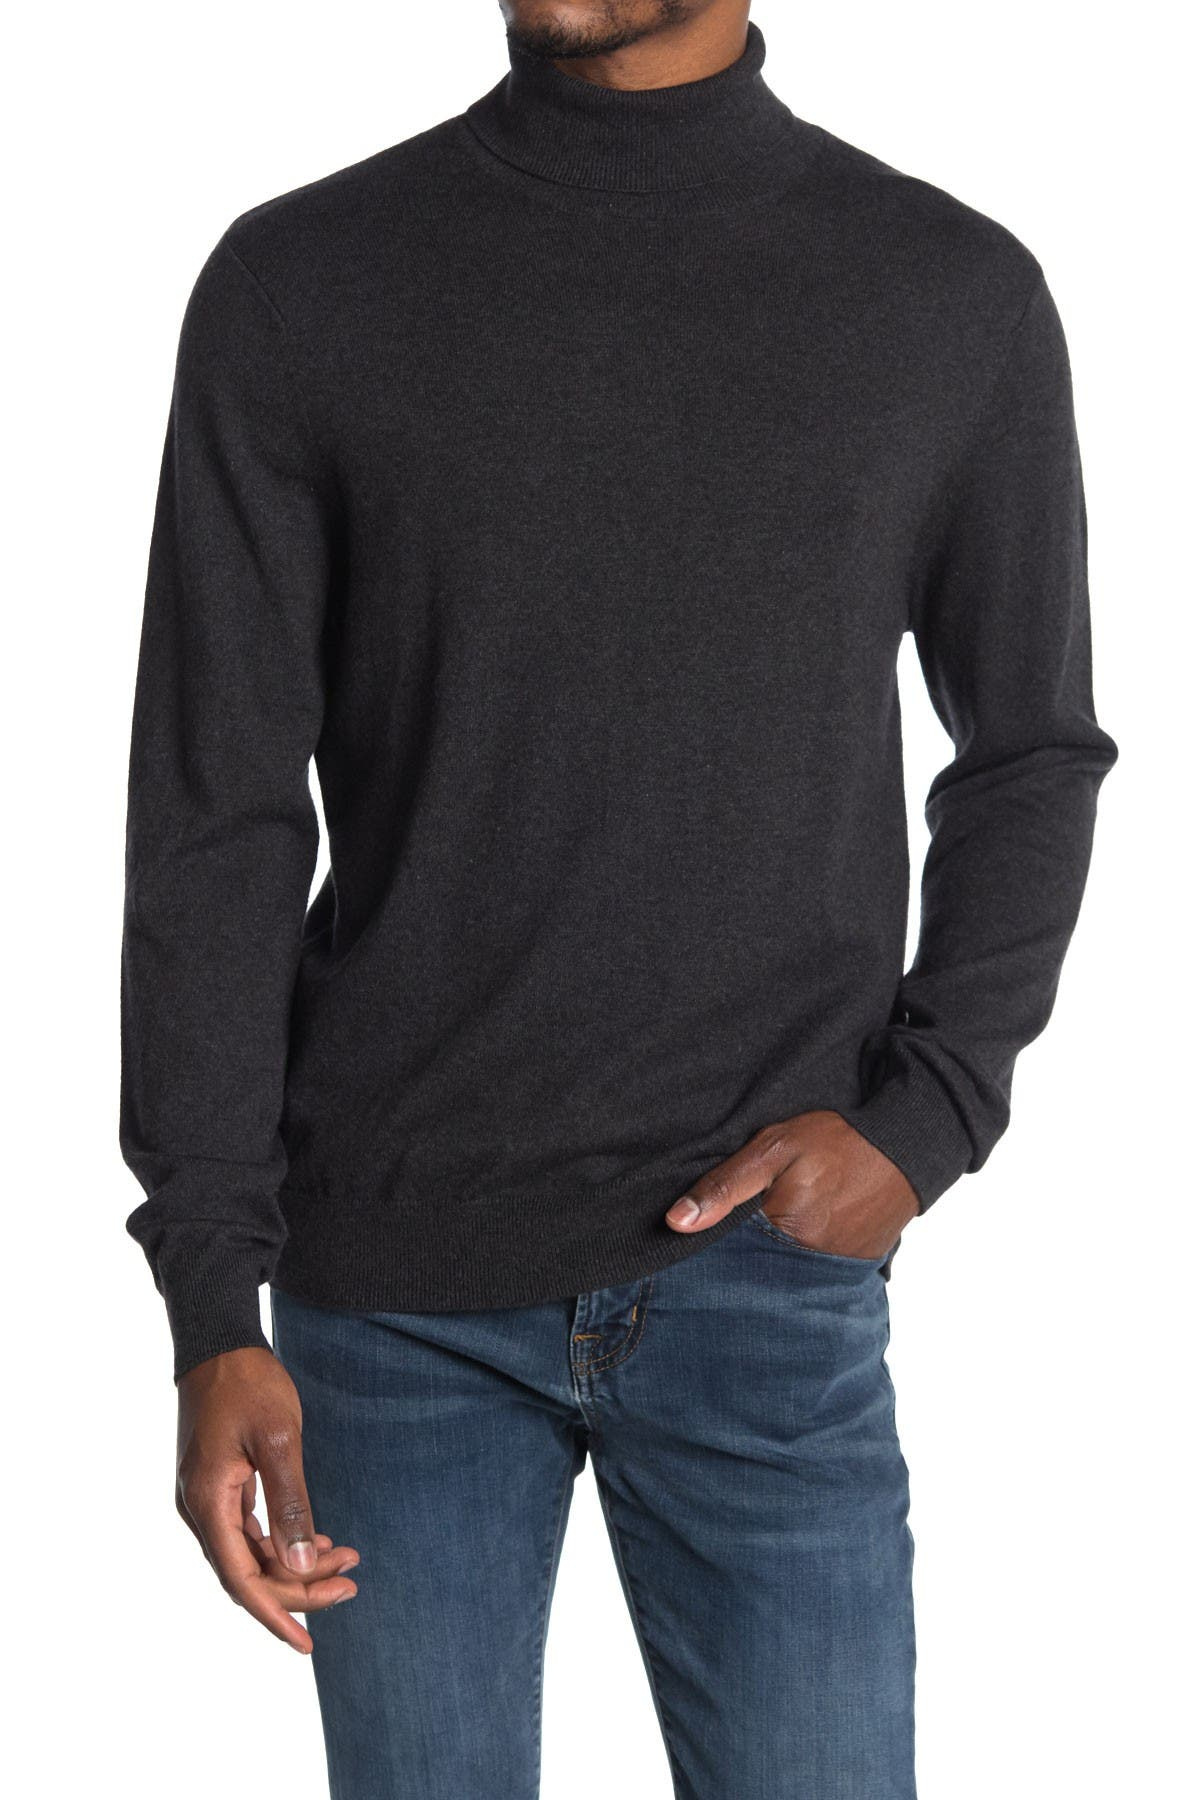 Image of WALLIN & BROS Cotton Cashmere Turtleneck